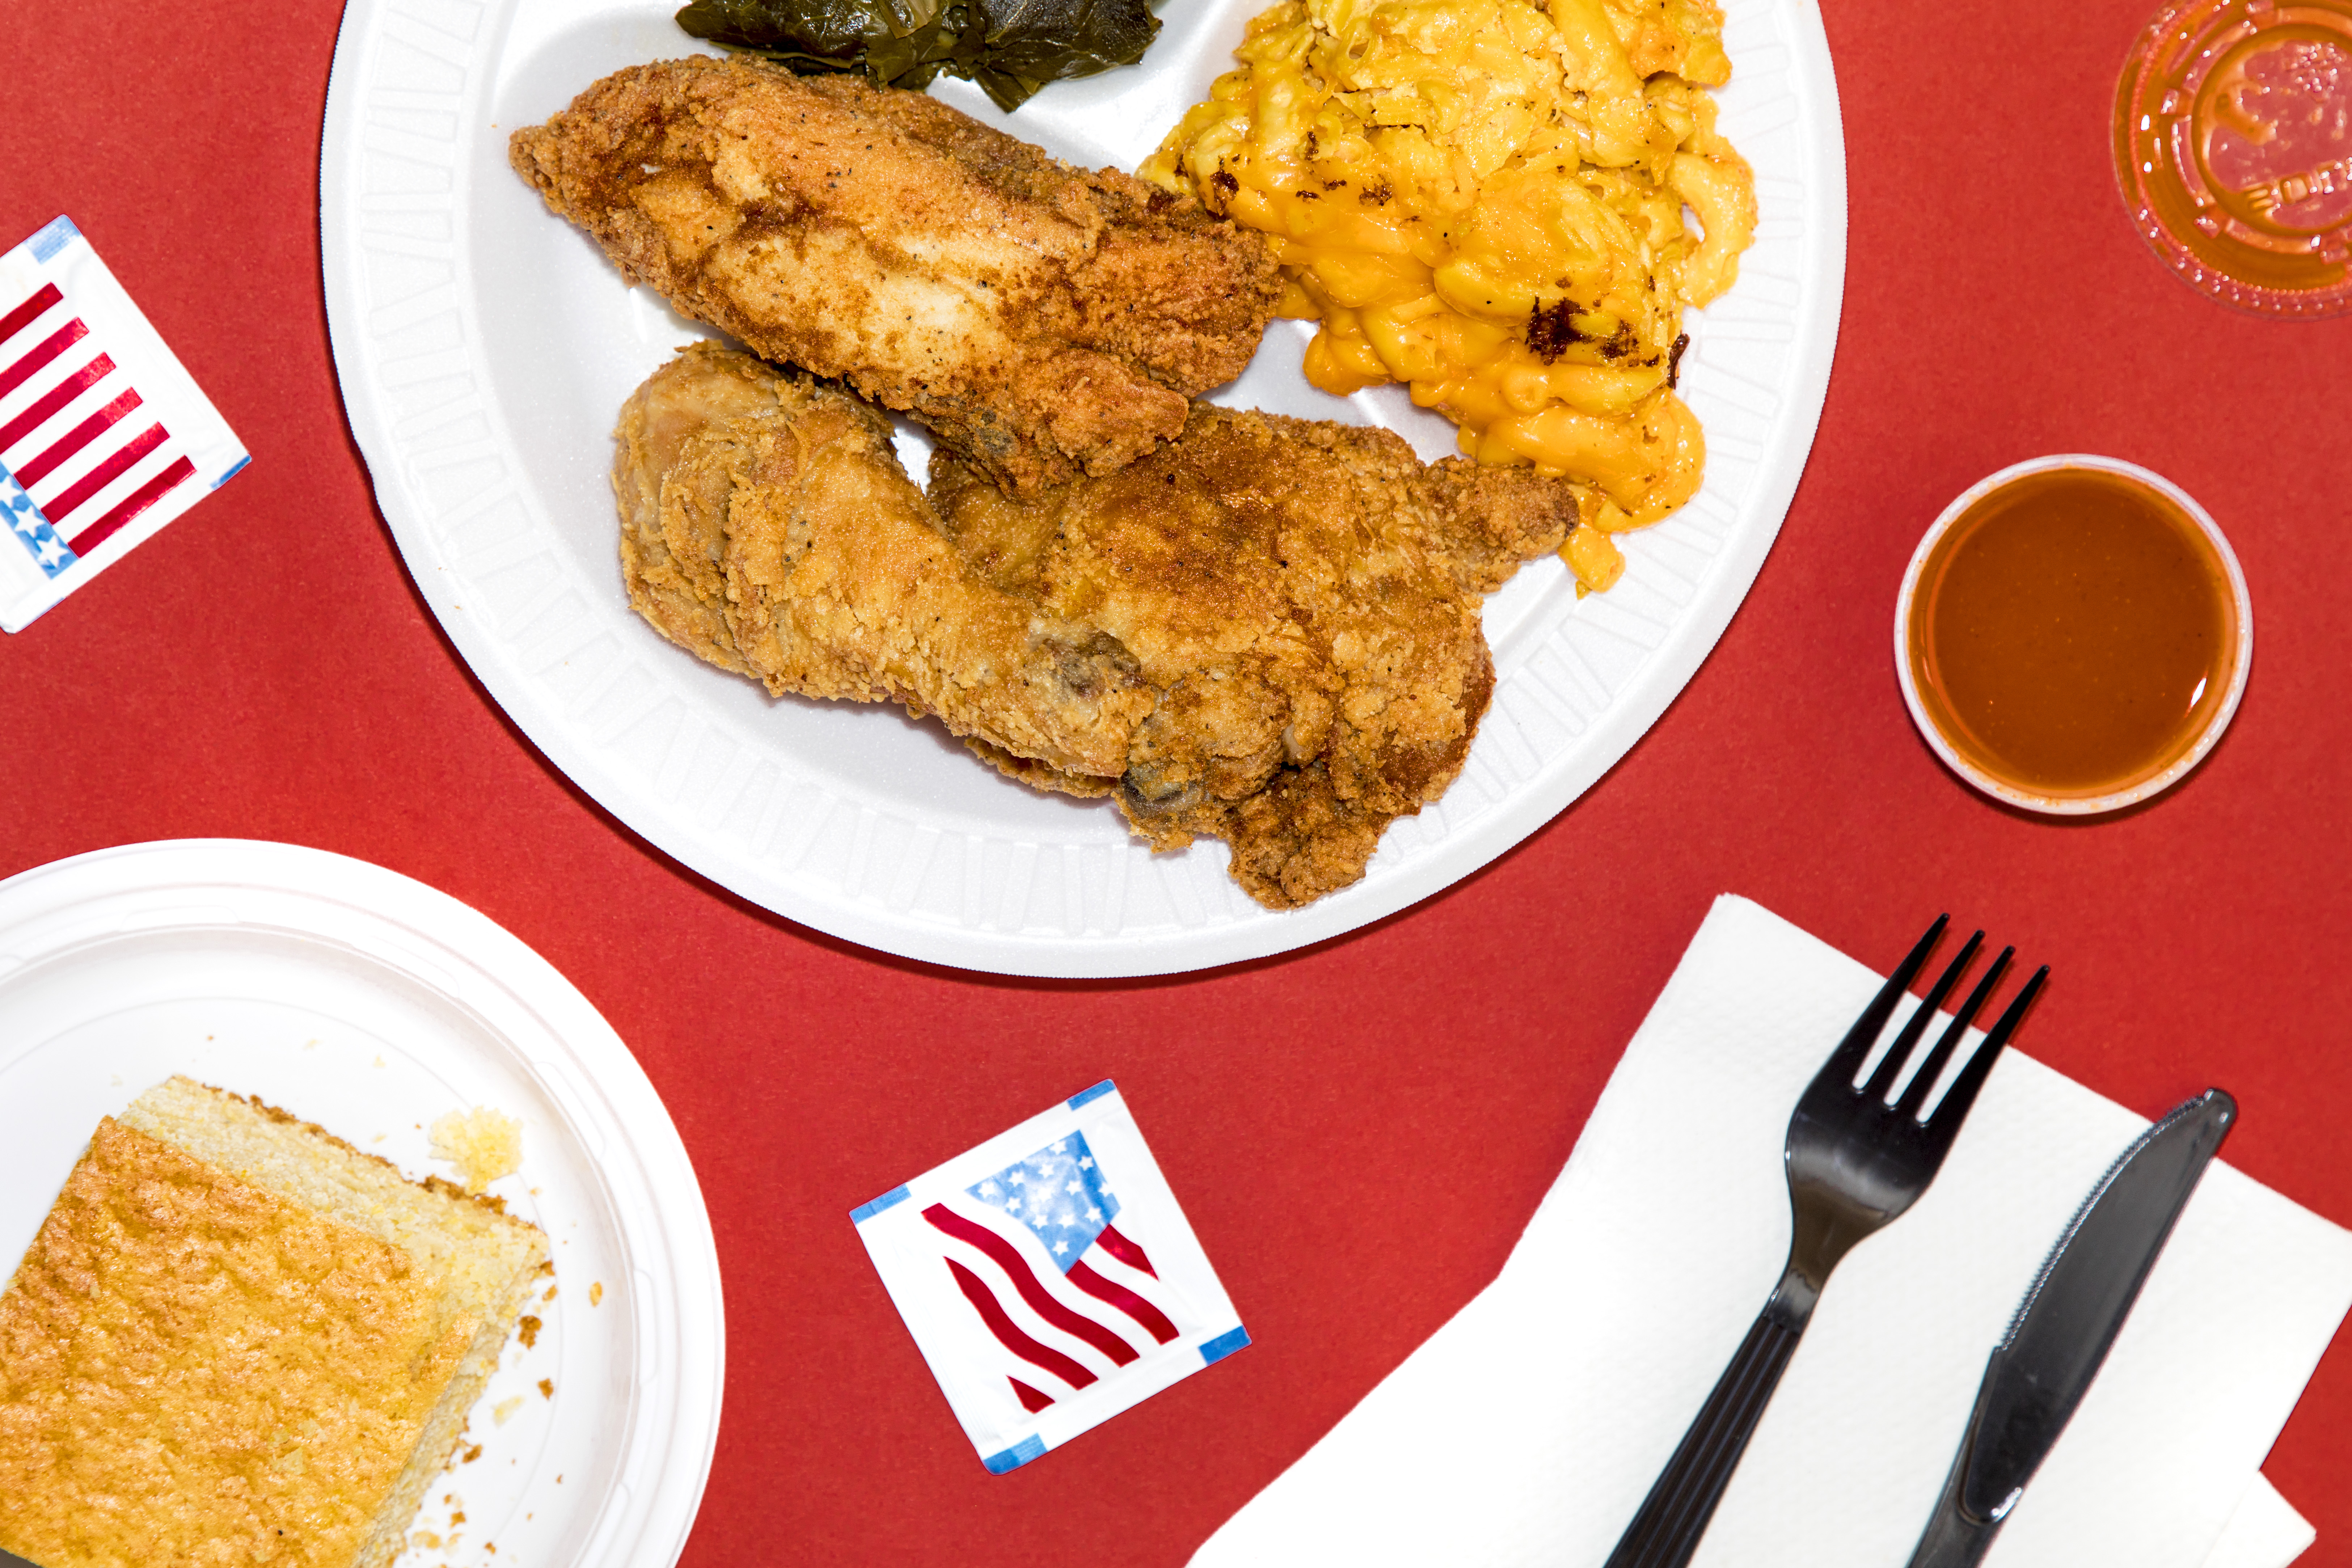 Fried chicken on a plate with two sides